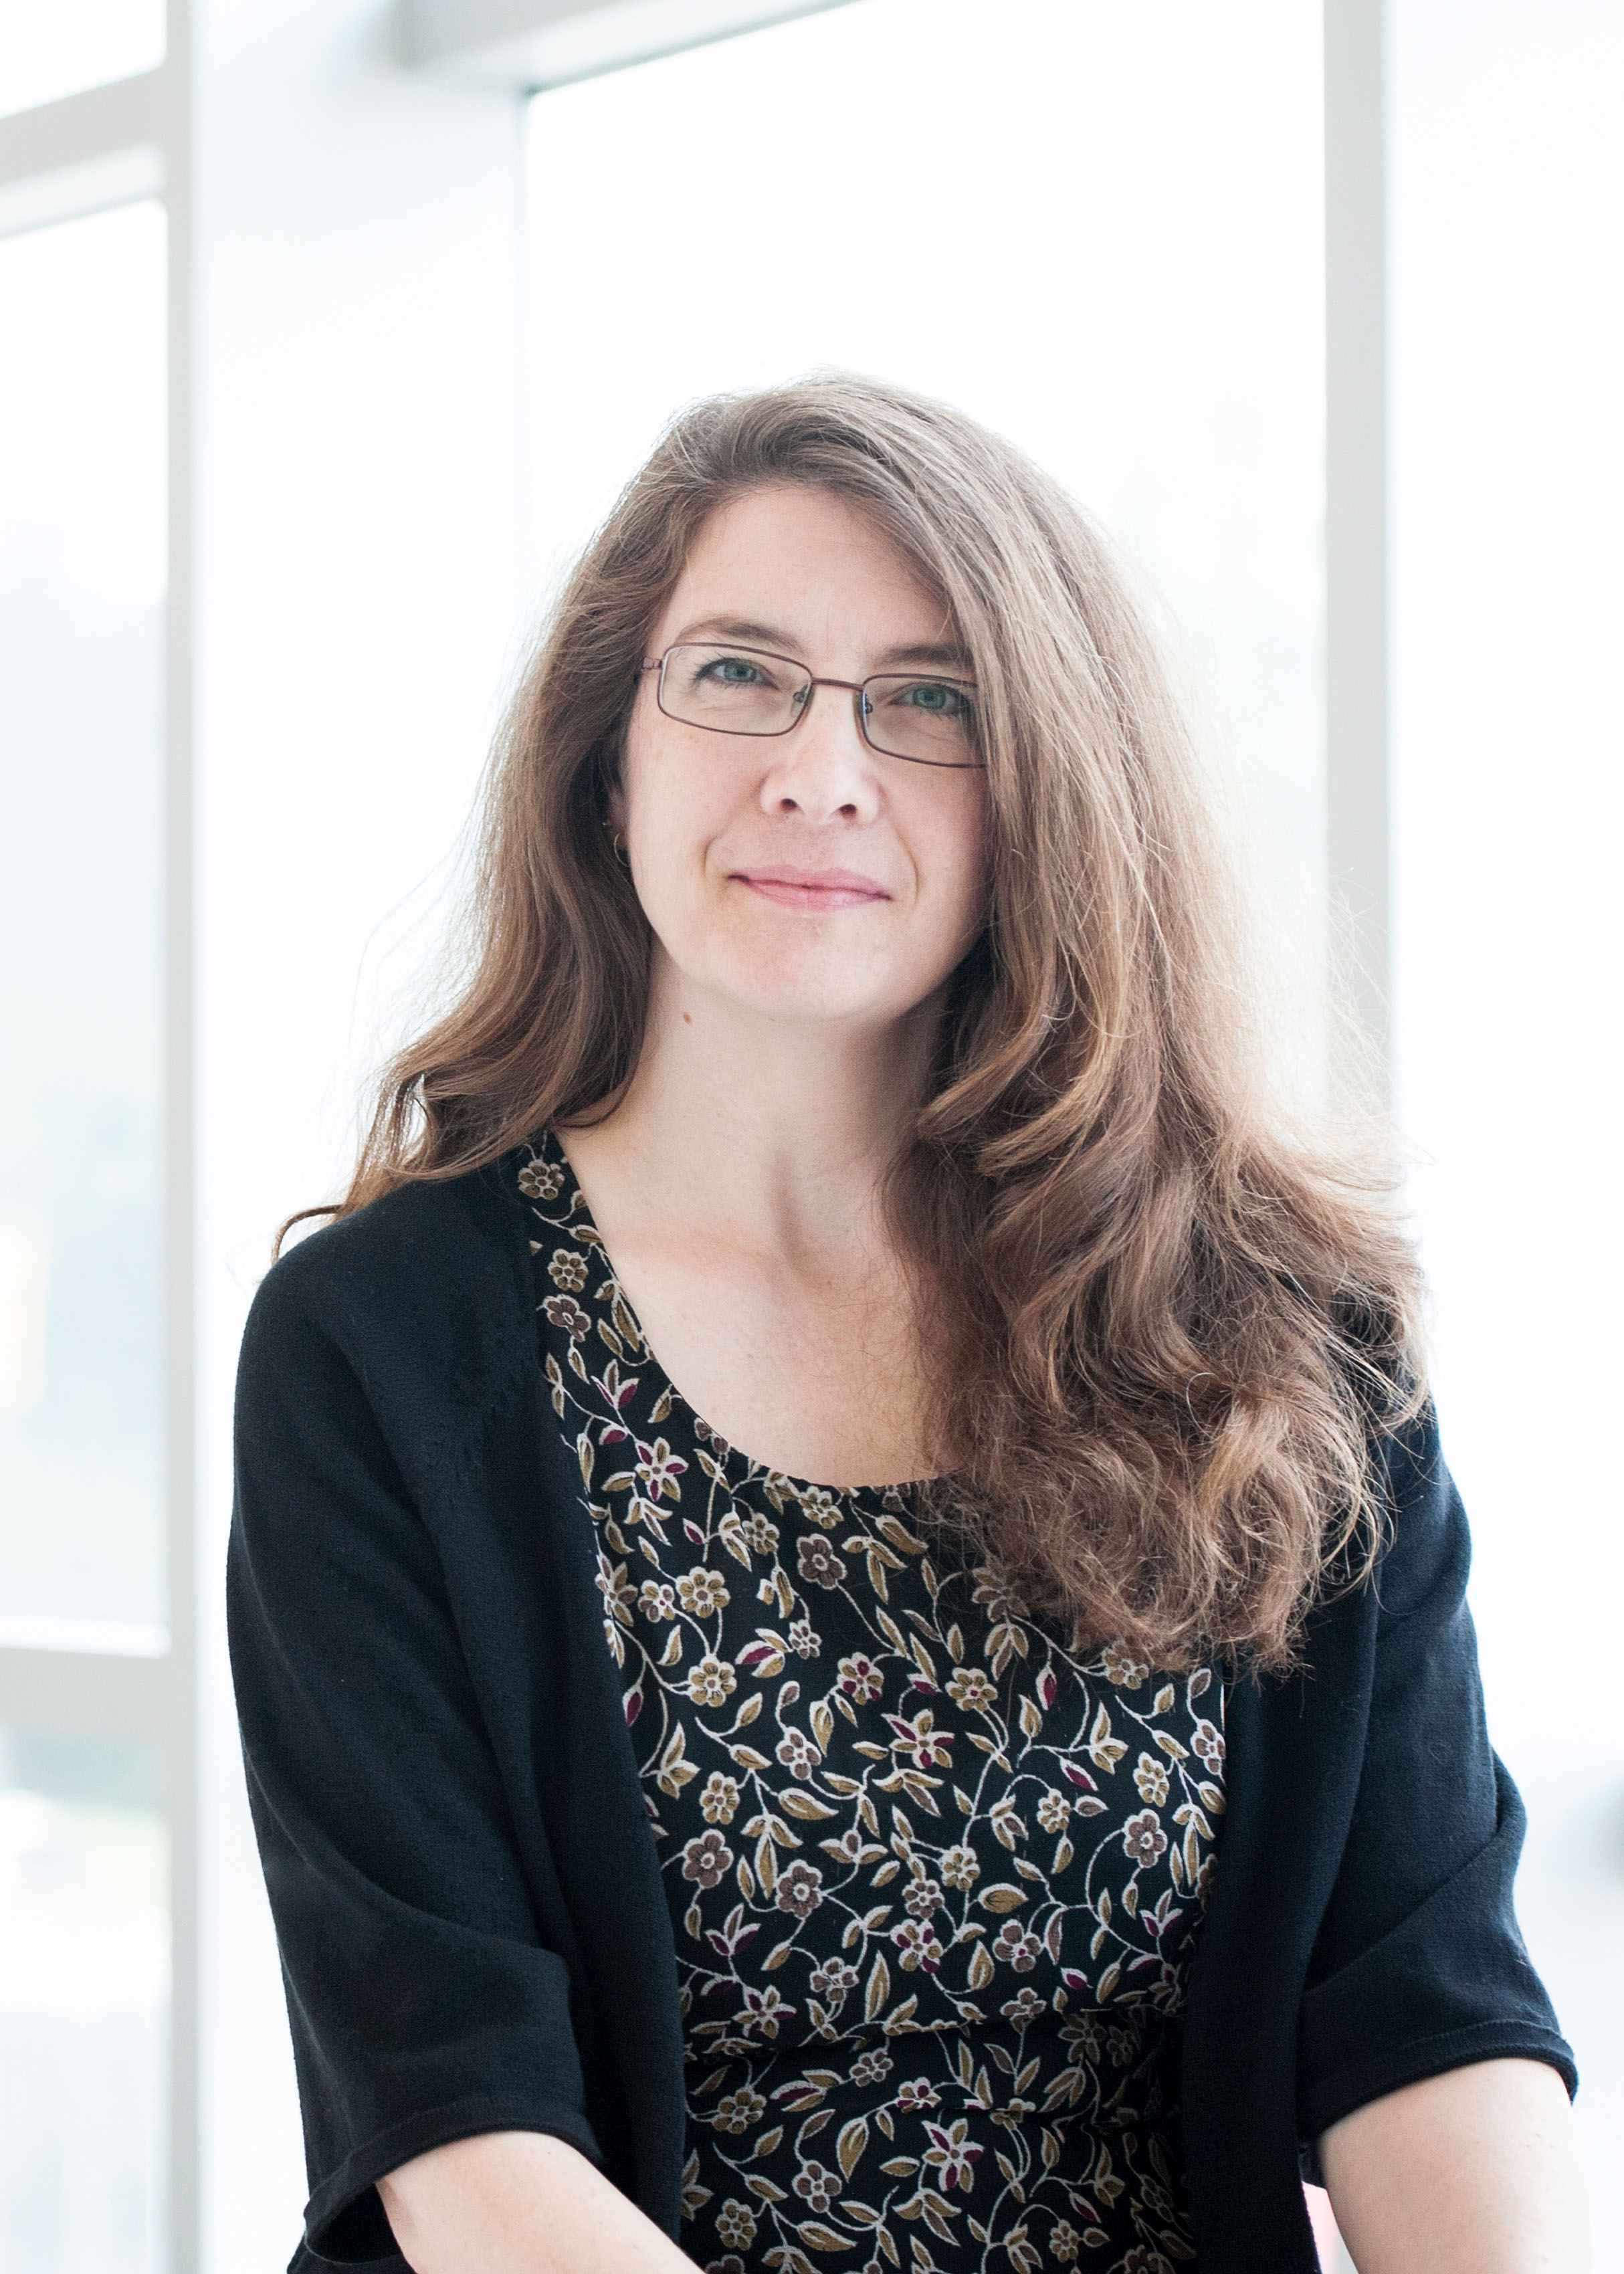 Head shot of Professor Ivy Bourgeault standing in front of a window wall